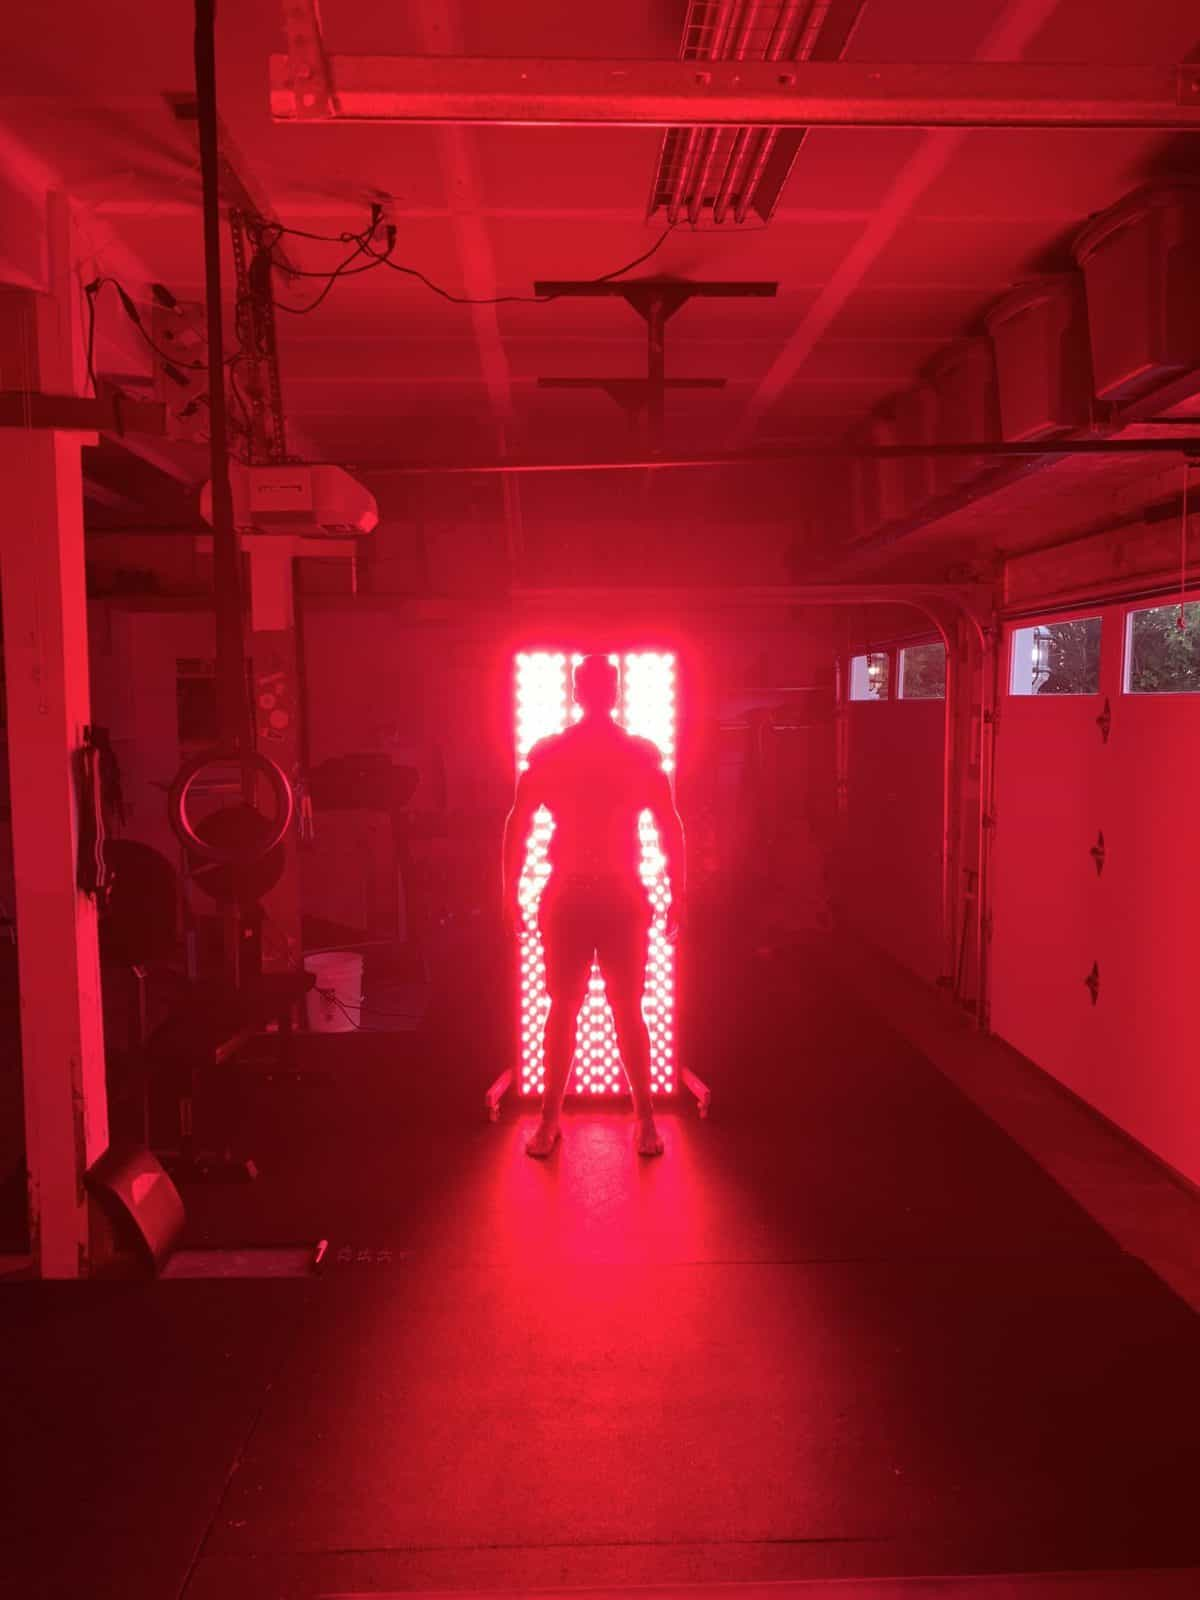 Silhouette of a man in front of a red light therapy unit